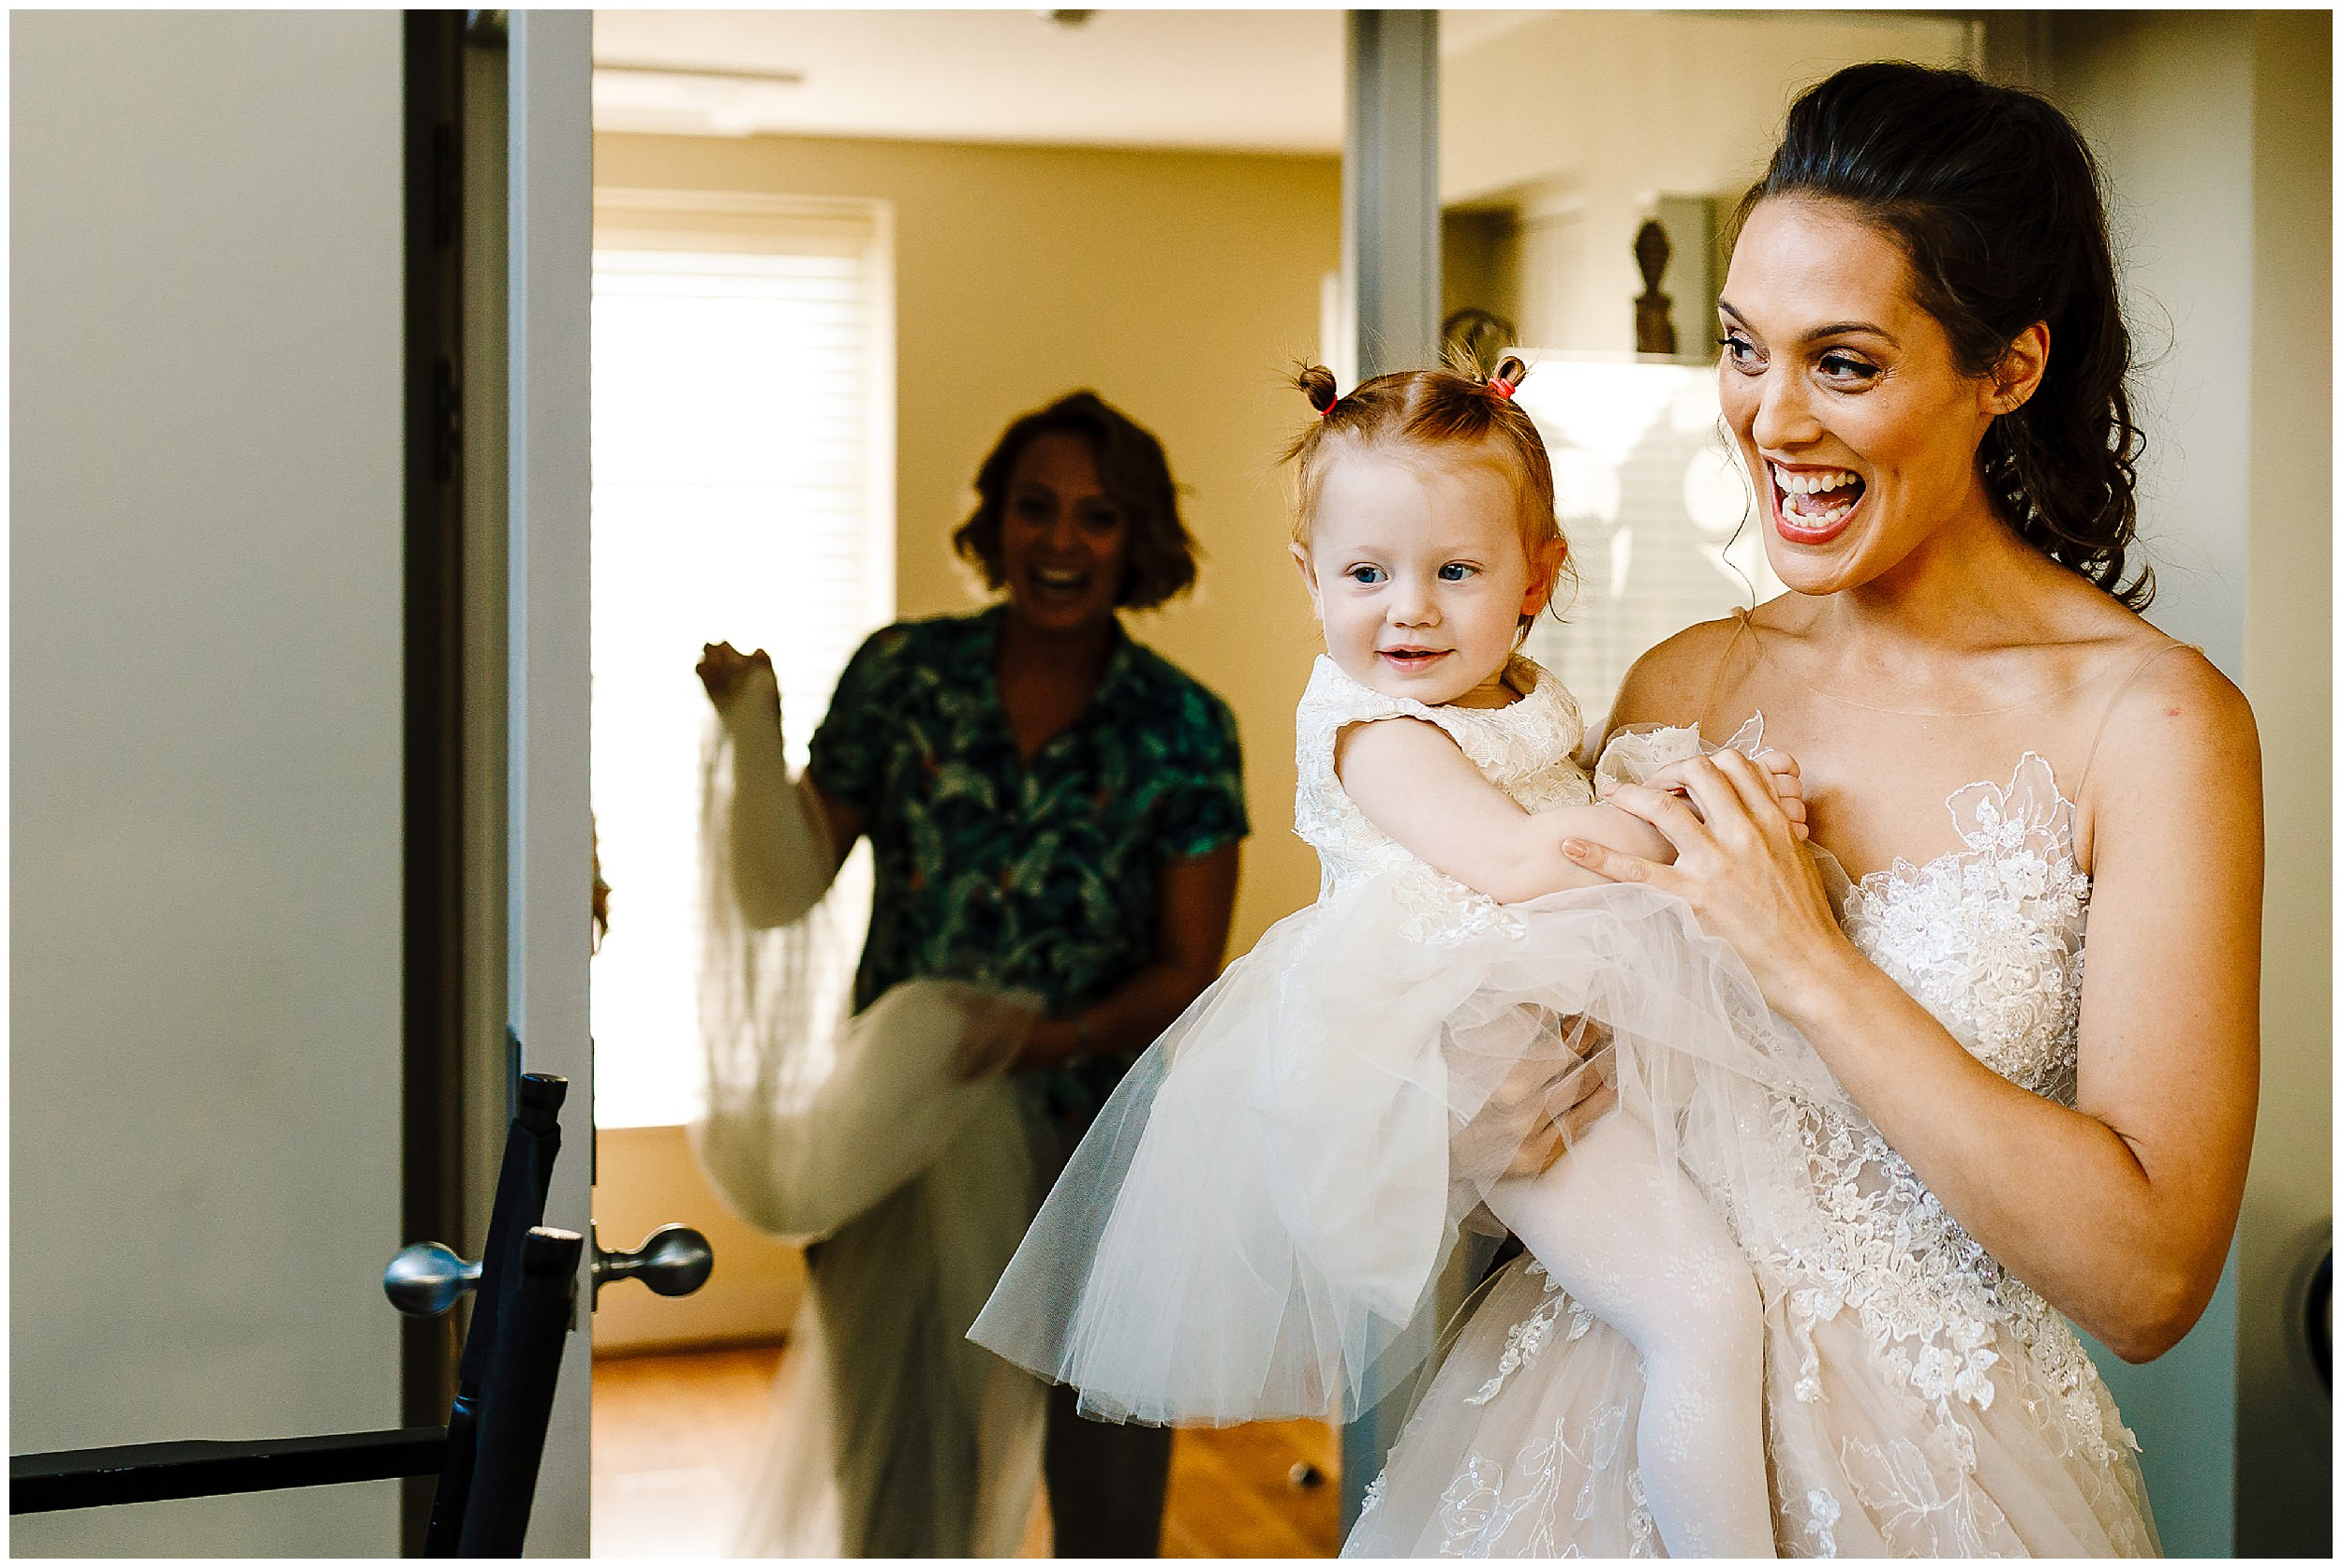 A bride holding her little girl walking into the room for the first time in her wedding dress